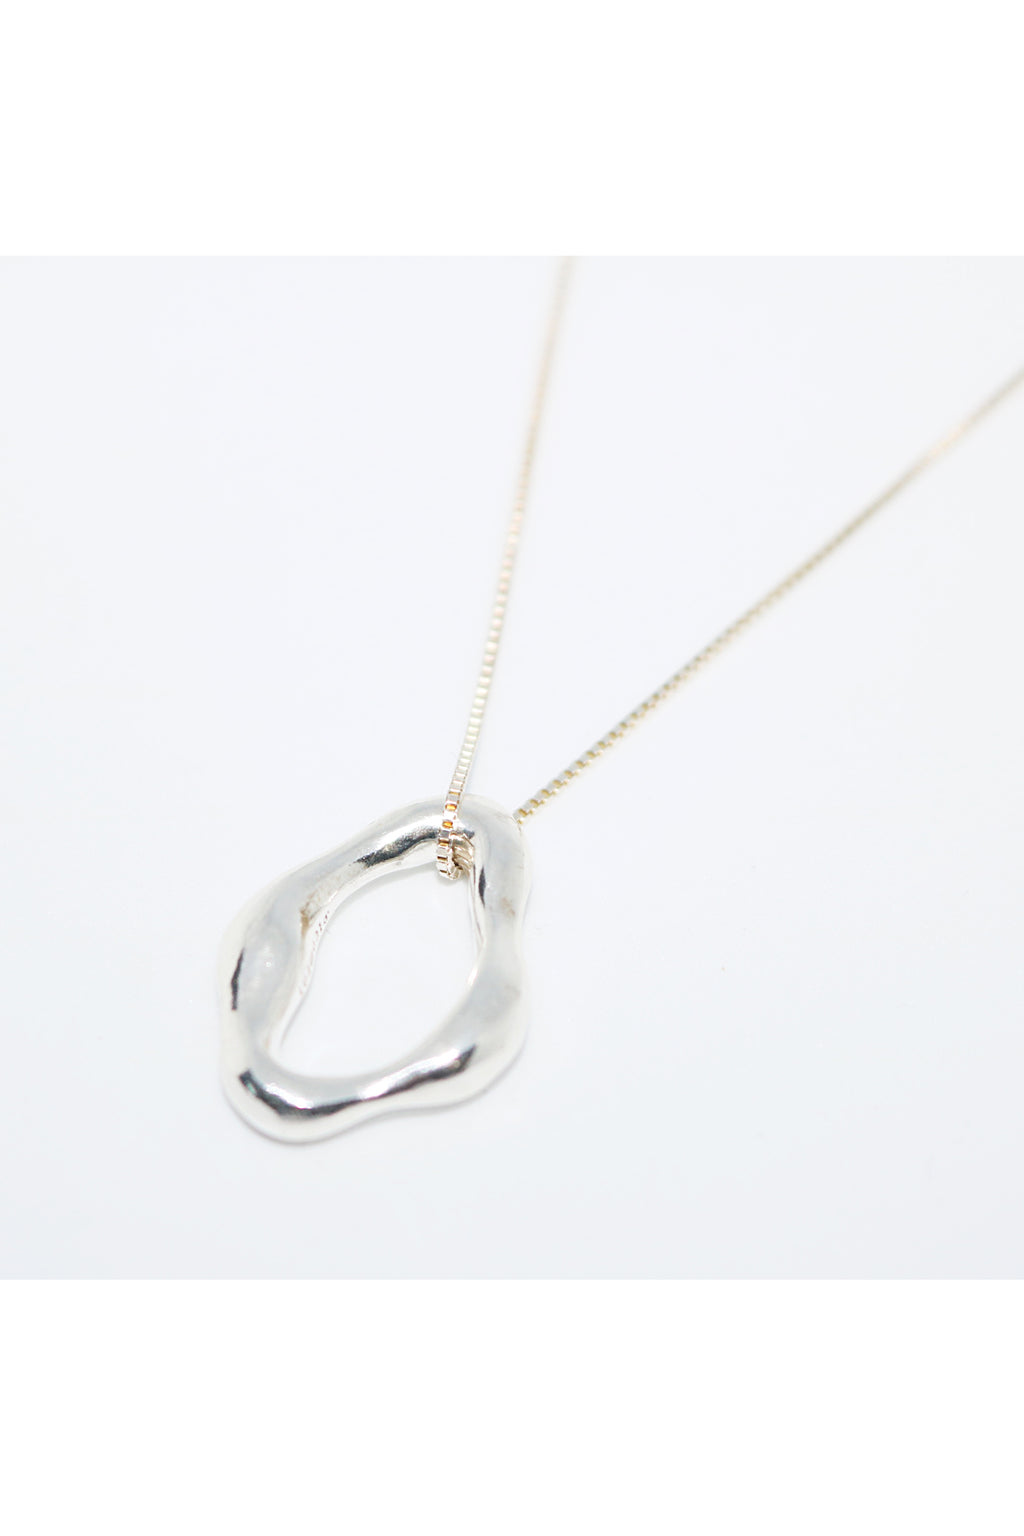 PICOMENT silver floating circle necklace